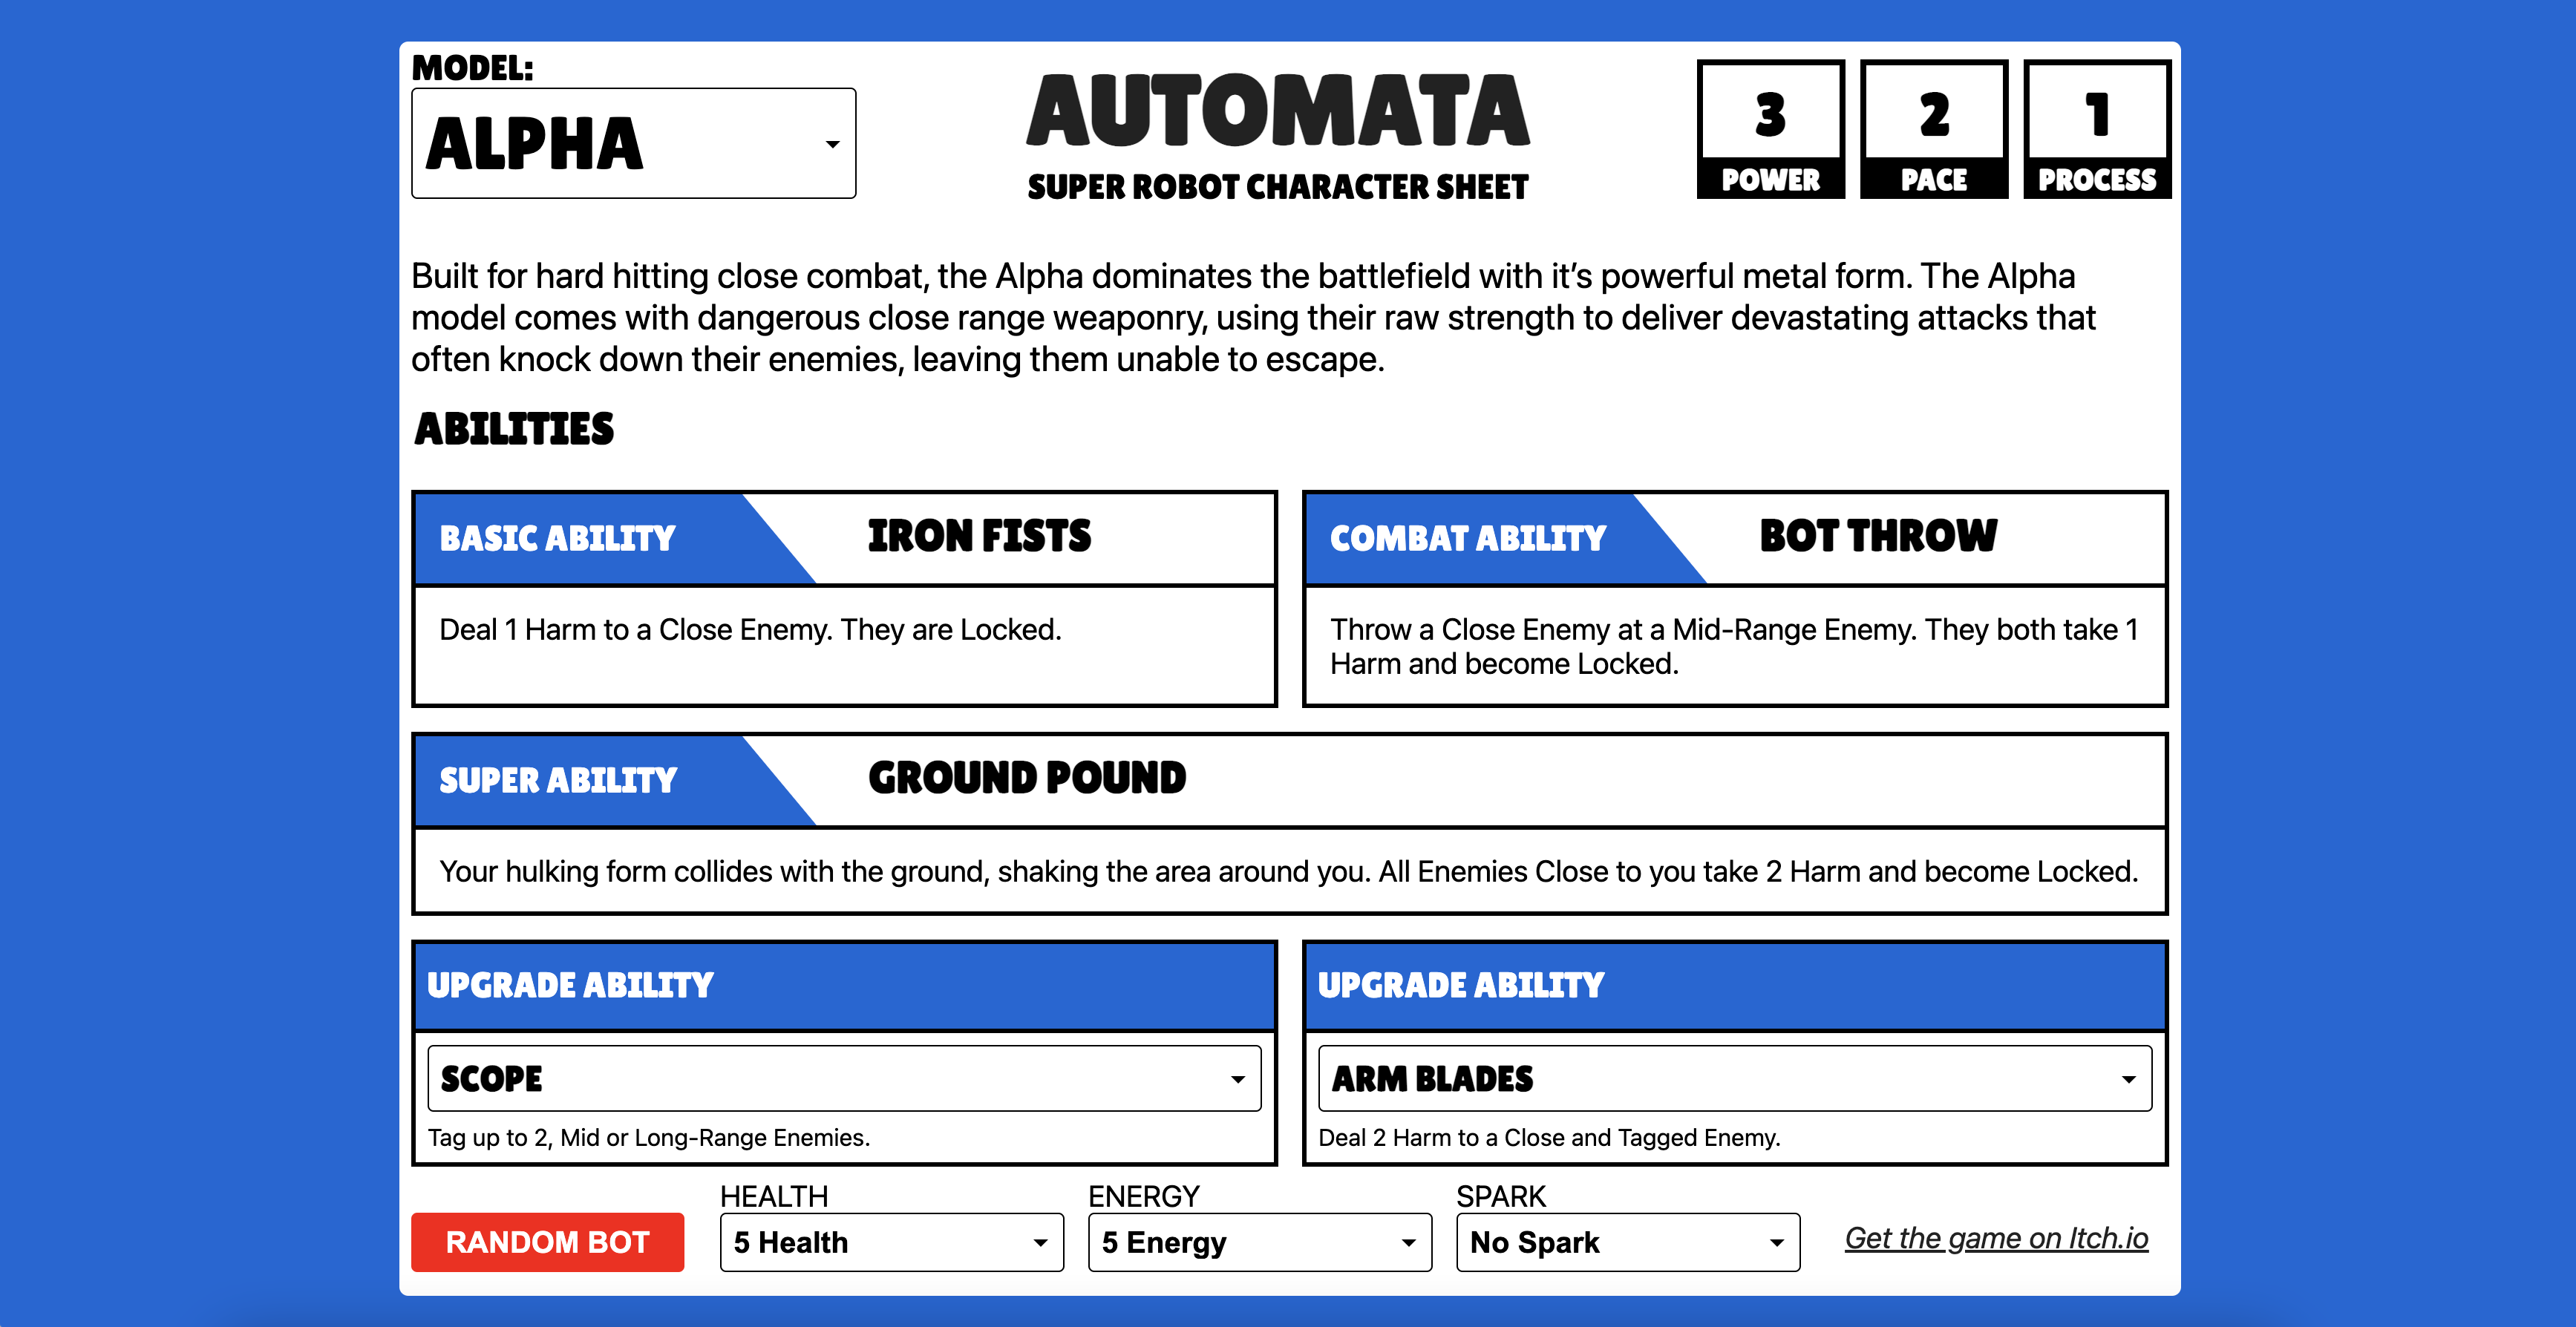 A picture of the digital character sheet for the game AUTOMATA. The sheet depicts a series of abilities that the play can use, as well as trackers for their stats, such as Health, Energy, and Sparks